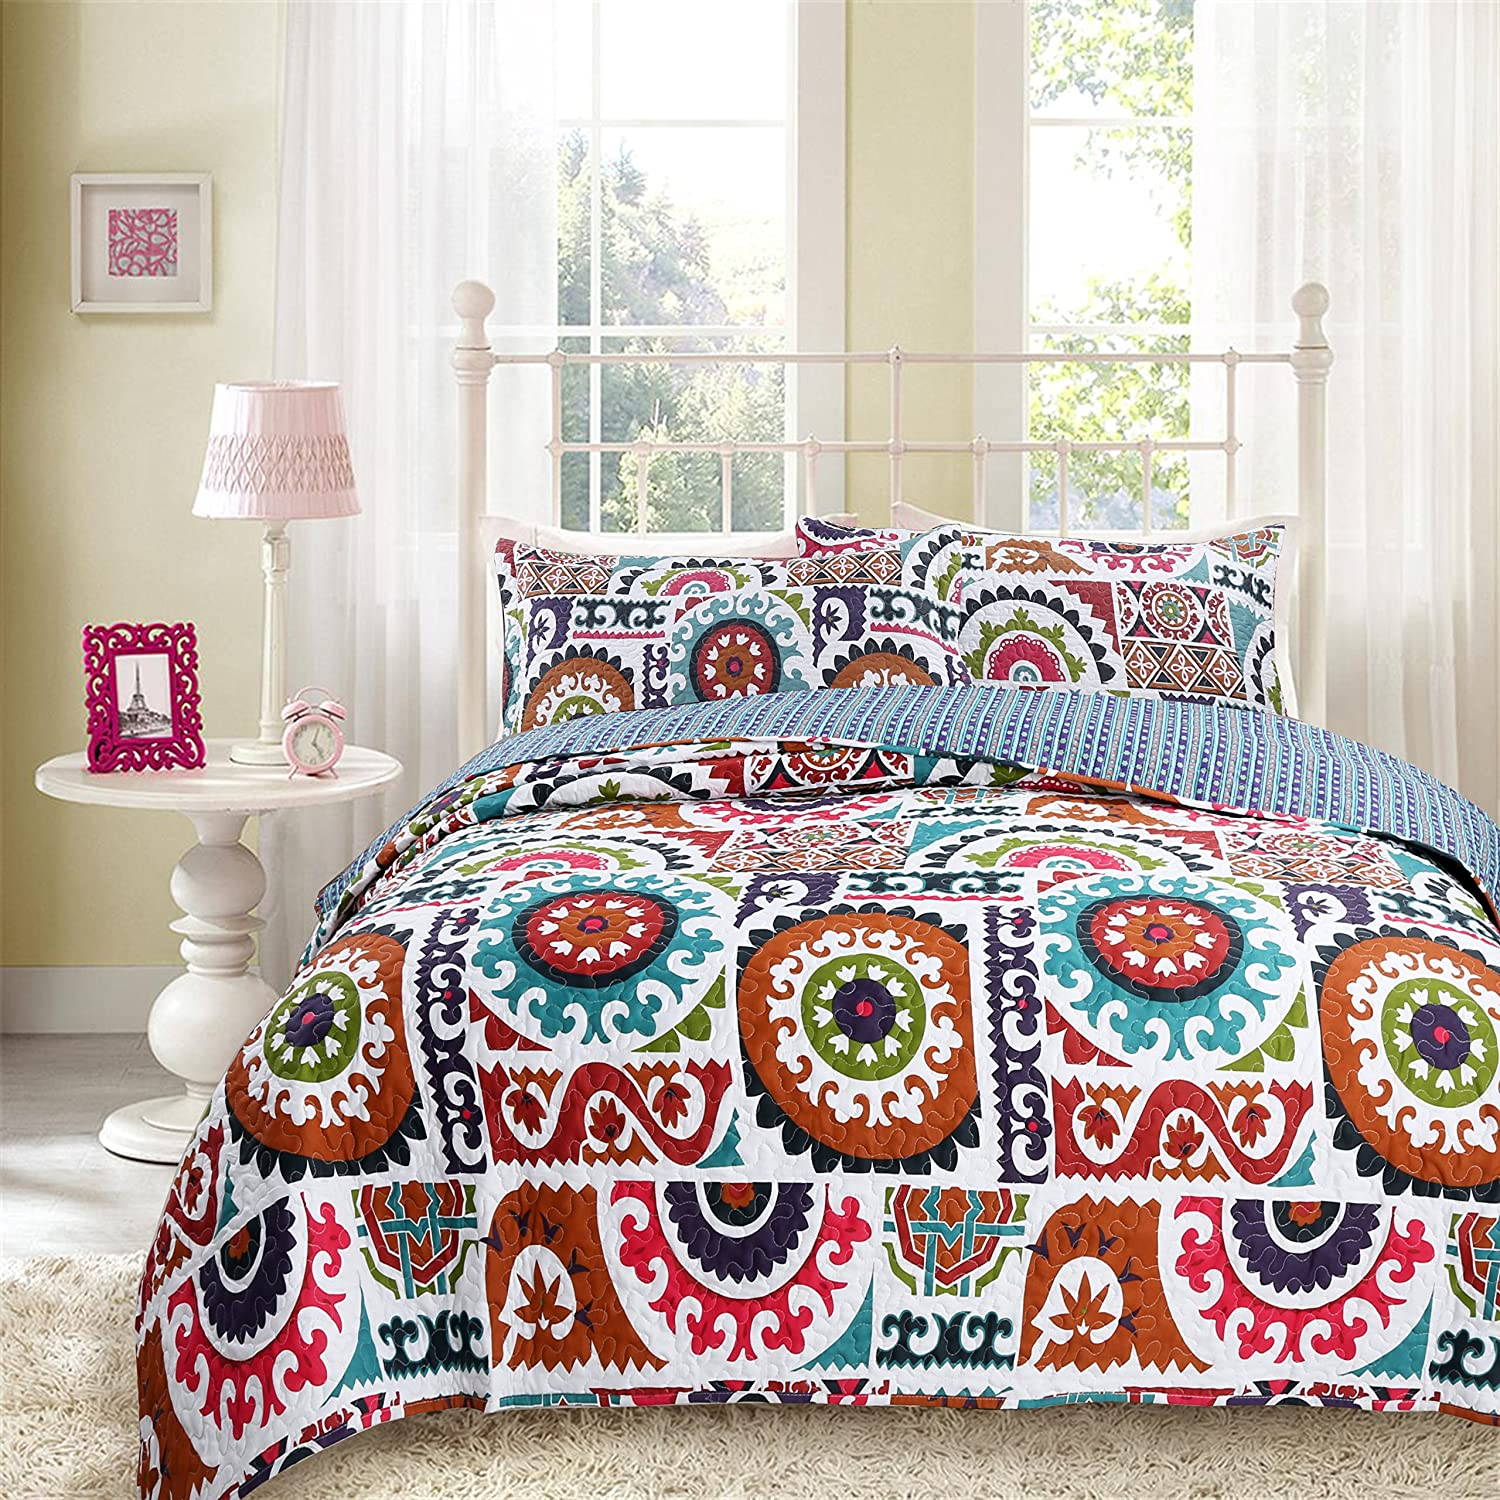 DaDa Bedding Bohemian Wildfire Gardens Reversible Cotton Quilted Coverlet Bedspread Set